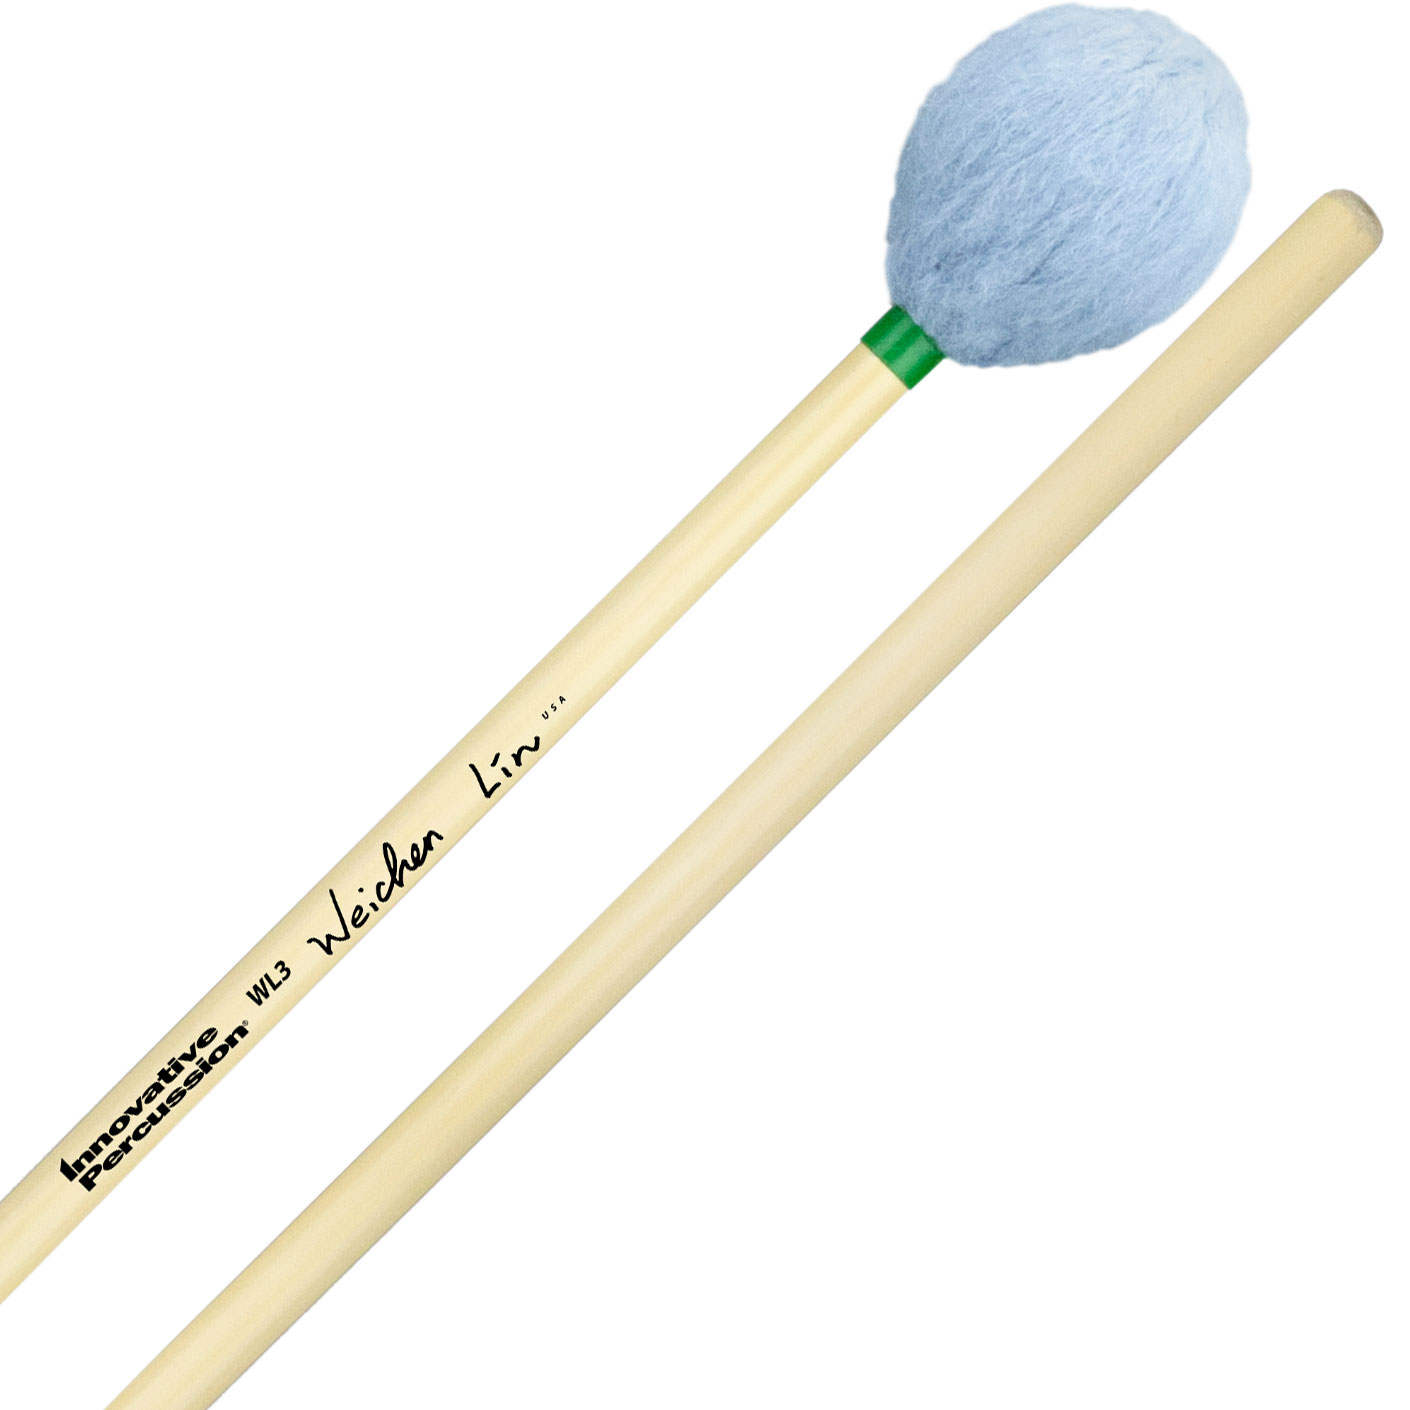 Innovative Percussion Wei-Chen Lin Signature Medium Soft Marimba Mallets with Rattan Handles